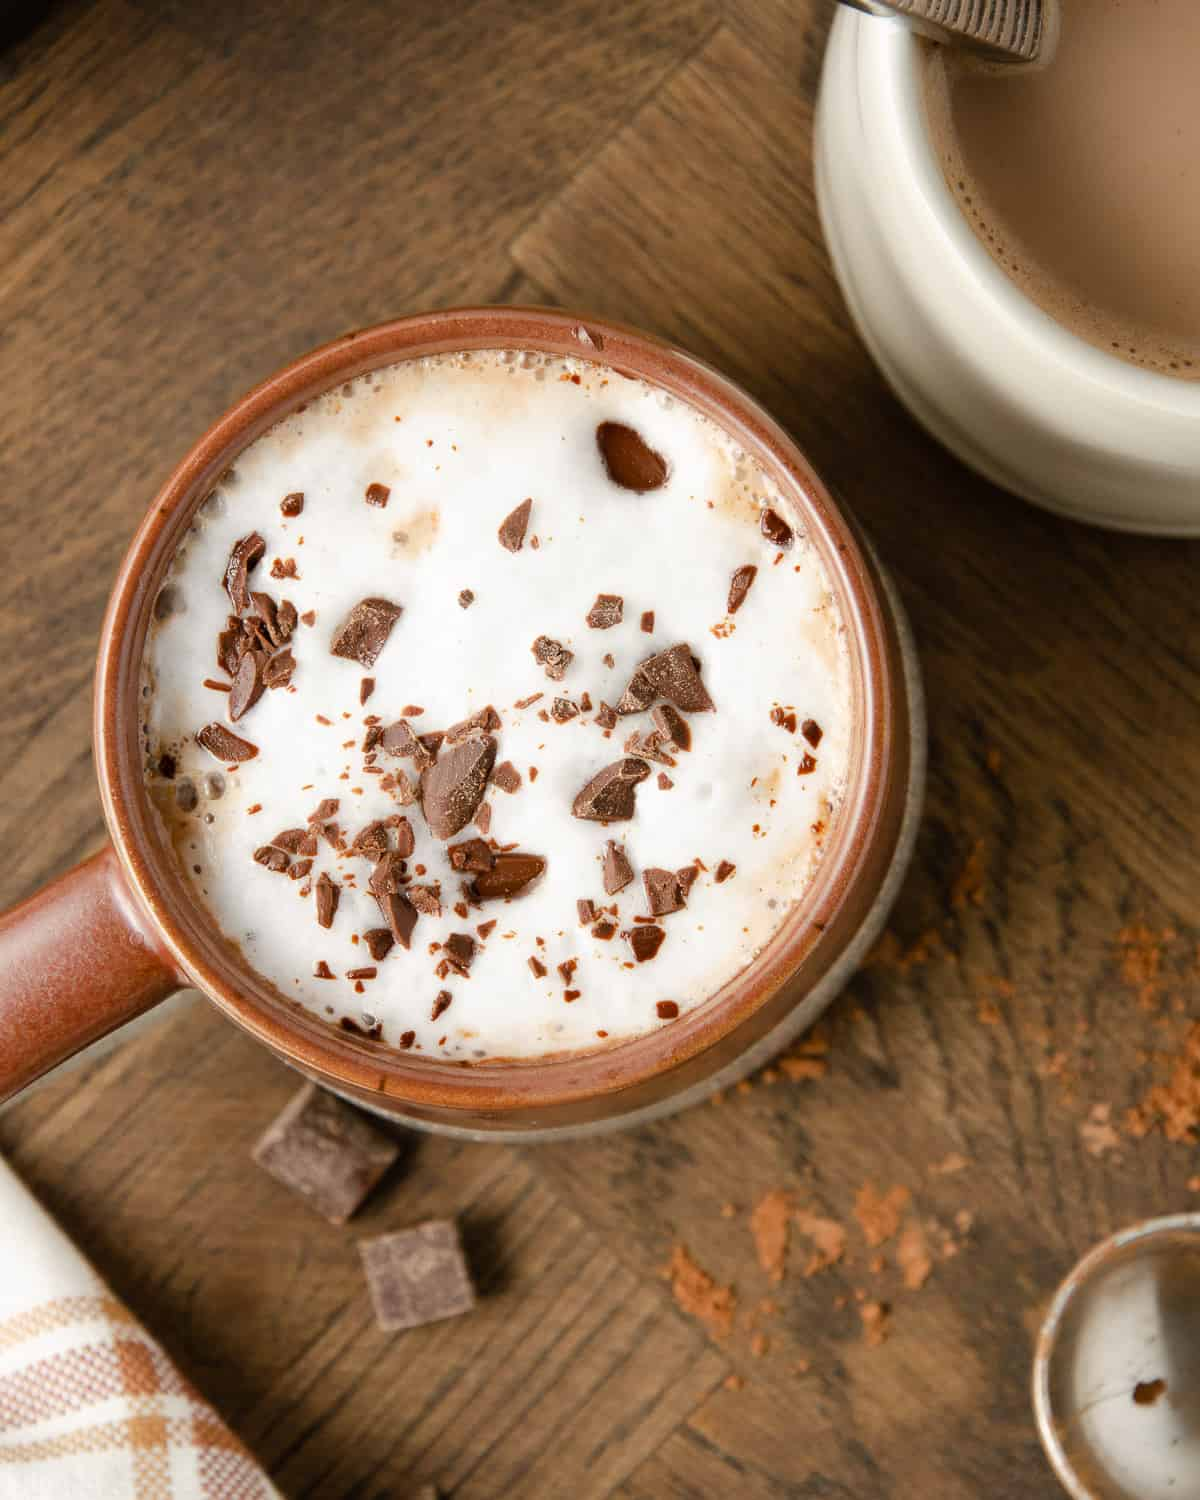 An overhead view of hot cocoa in a mug with cacao nibs on top.